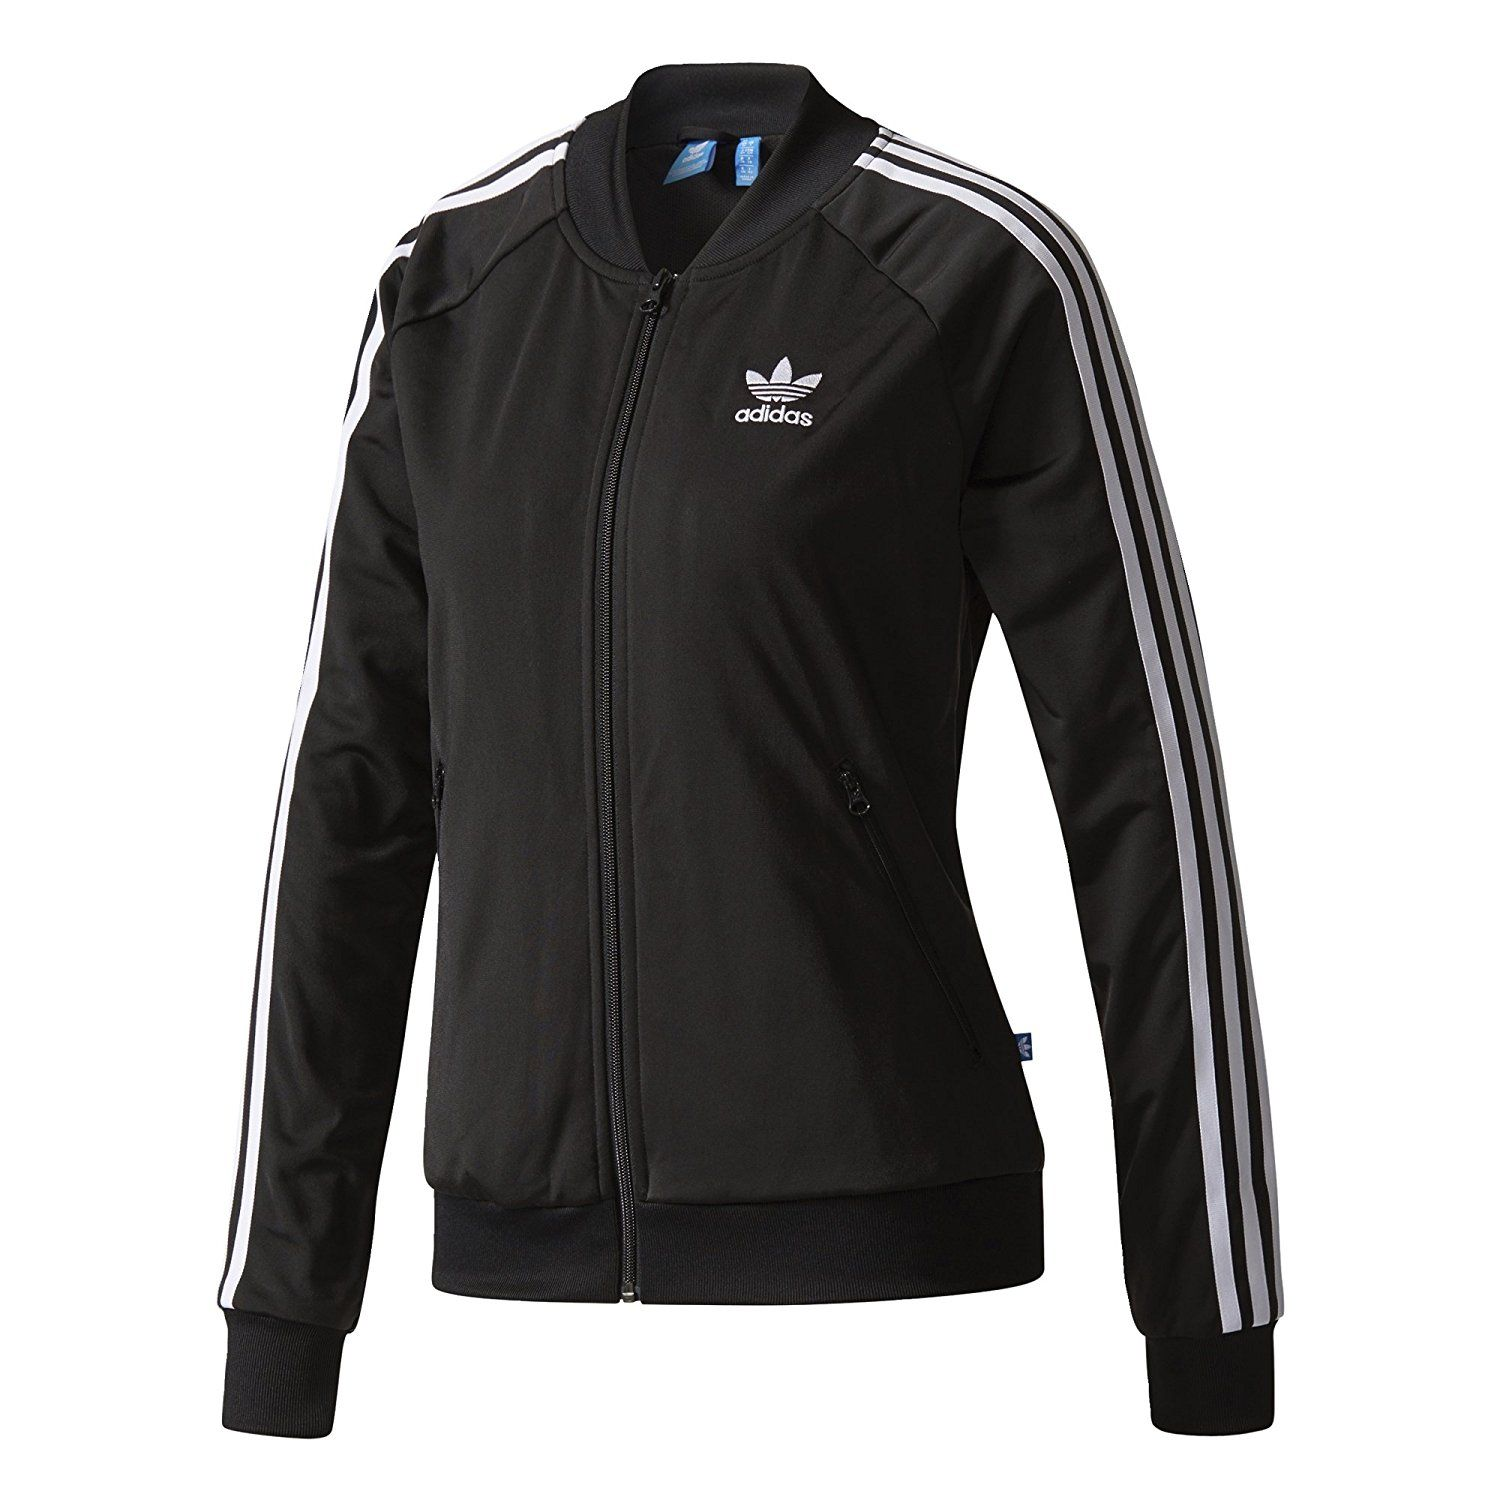 a3c78008cc3 adidas Originals Women s Superstar Track Top at Amazon Women s Clothing  store